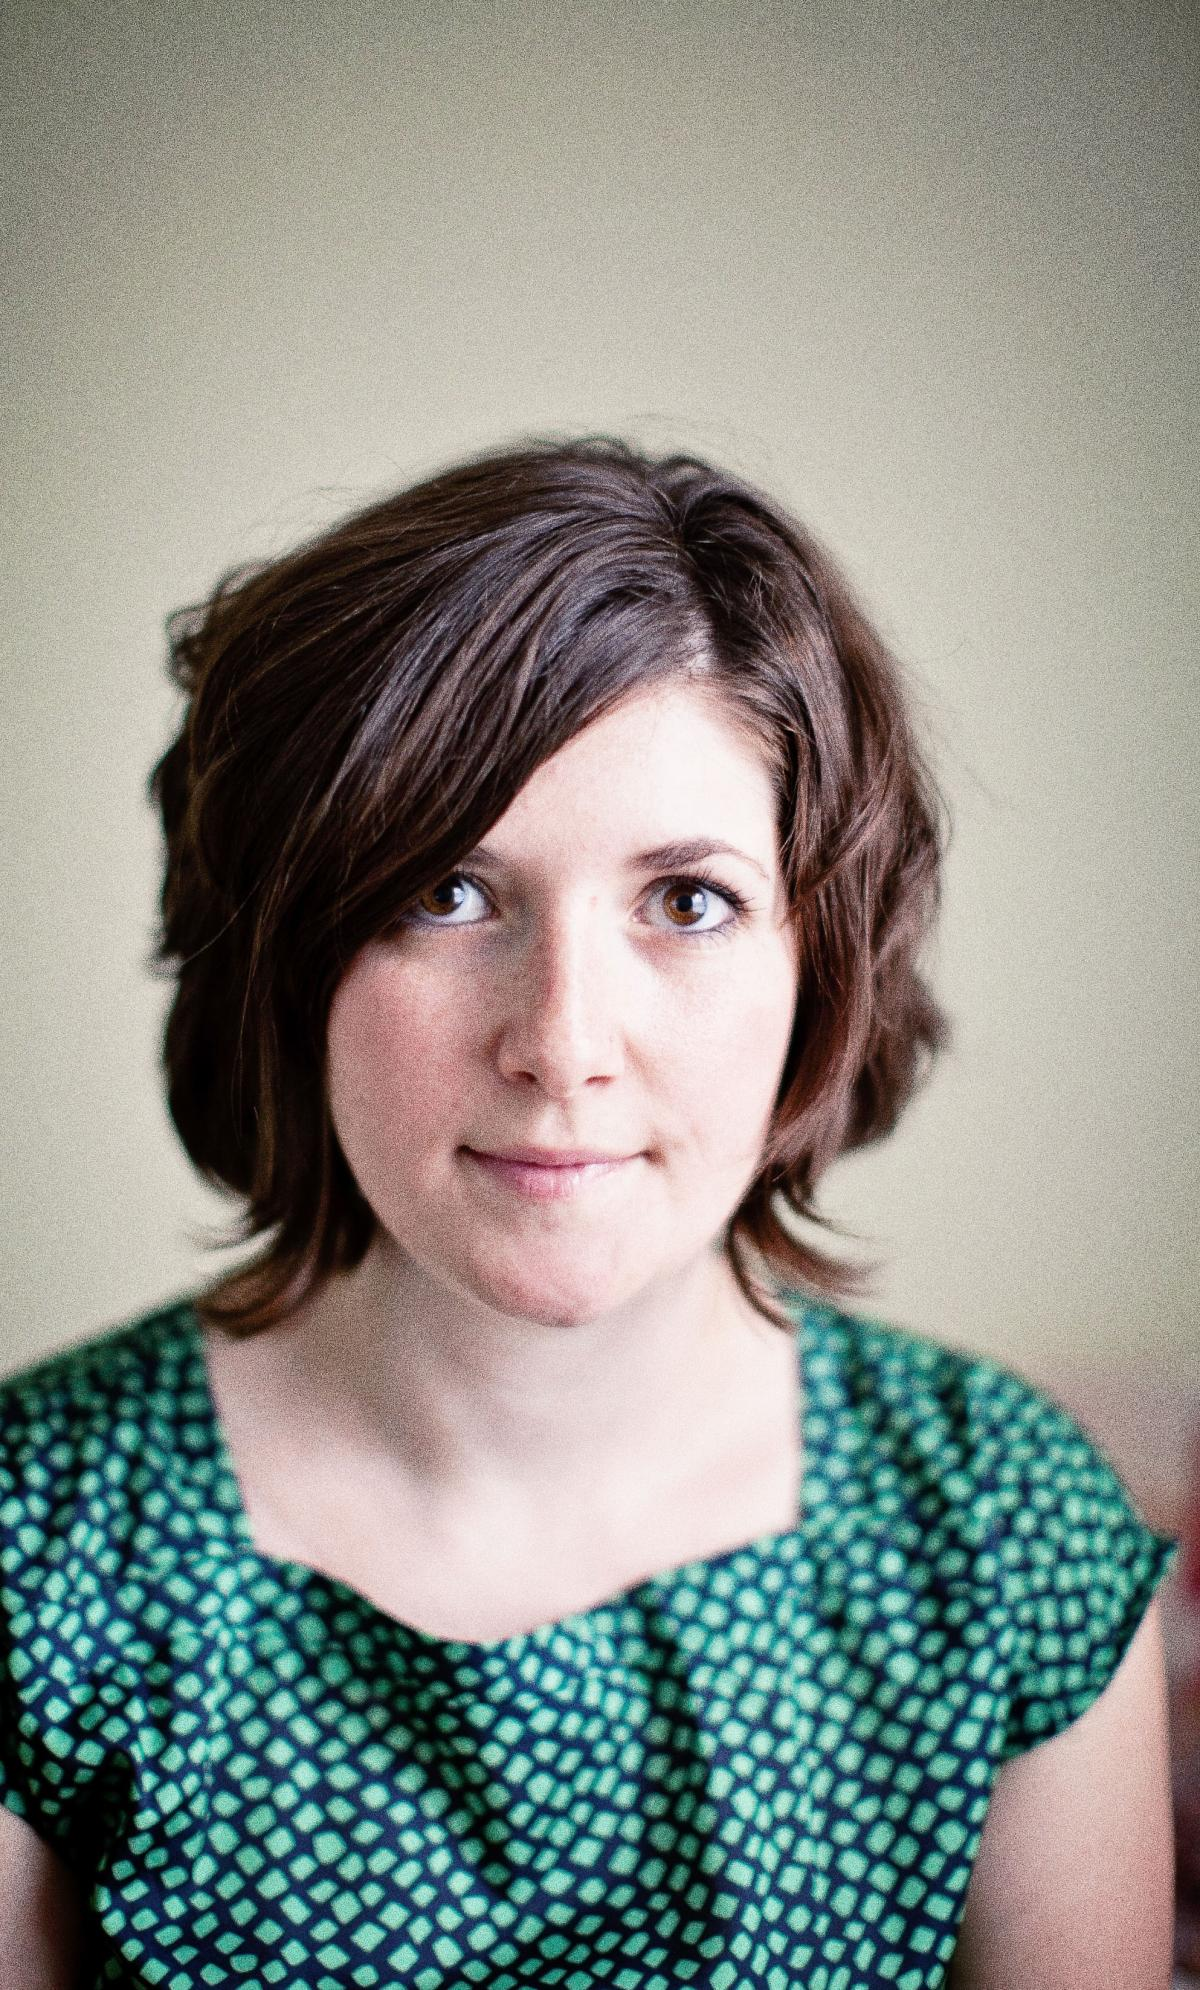 Claire Vaye Watkins is the author of the short story collection Battleborn.